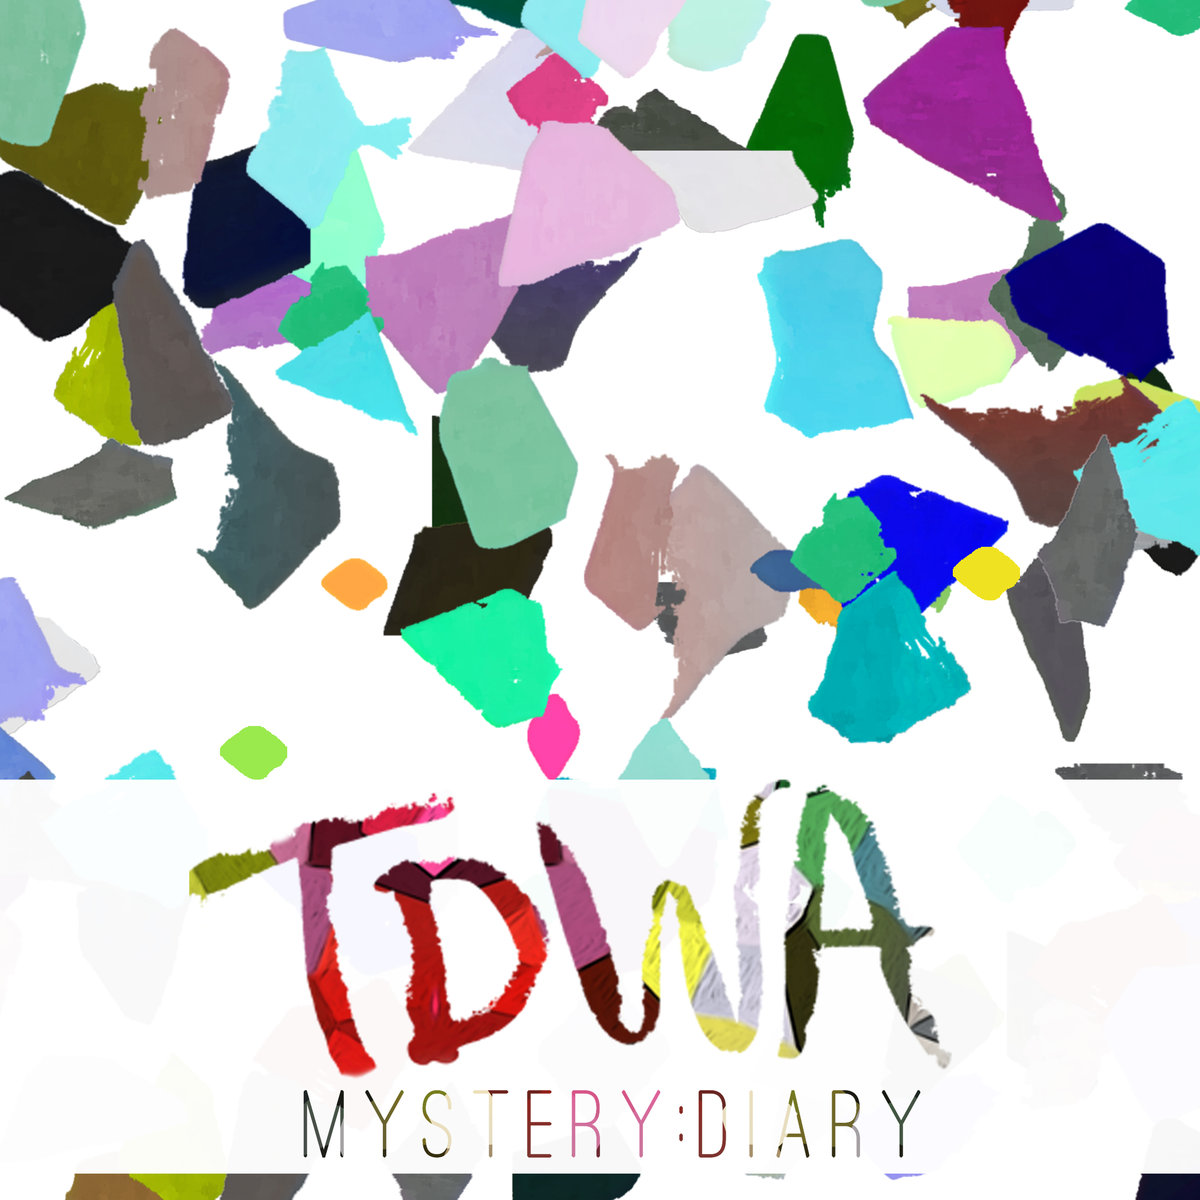 Their Dogs Were Astronauts - Body Thief @ 'Mystery:Diary' album (instrumental metal, metal)